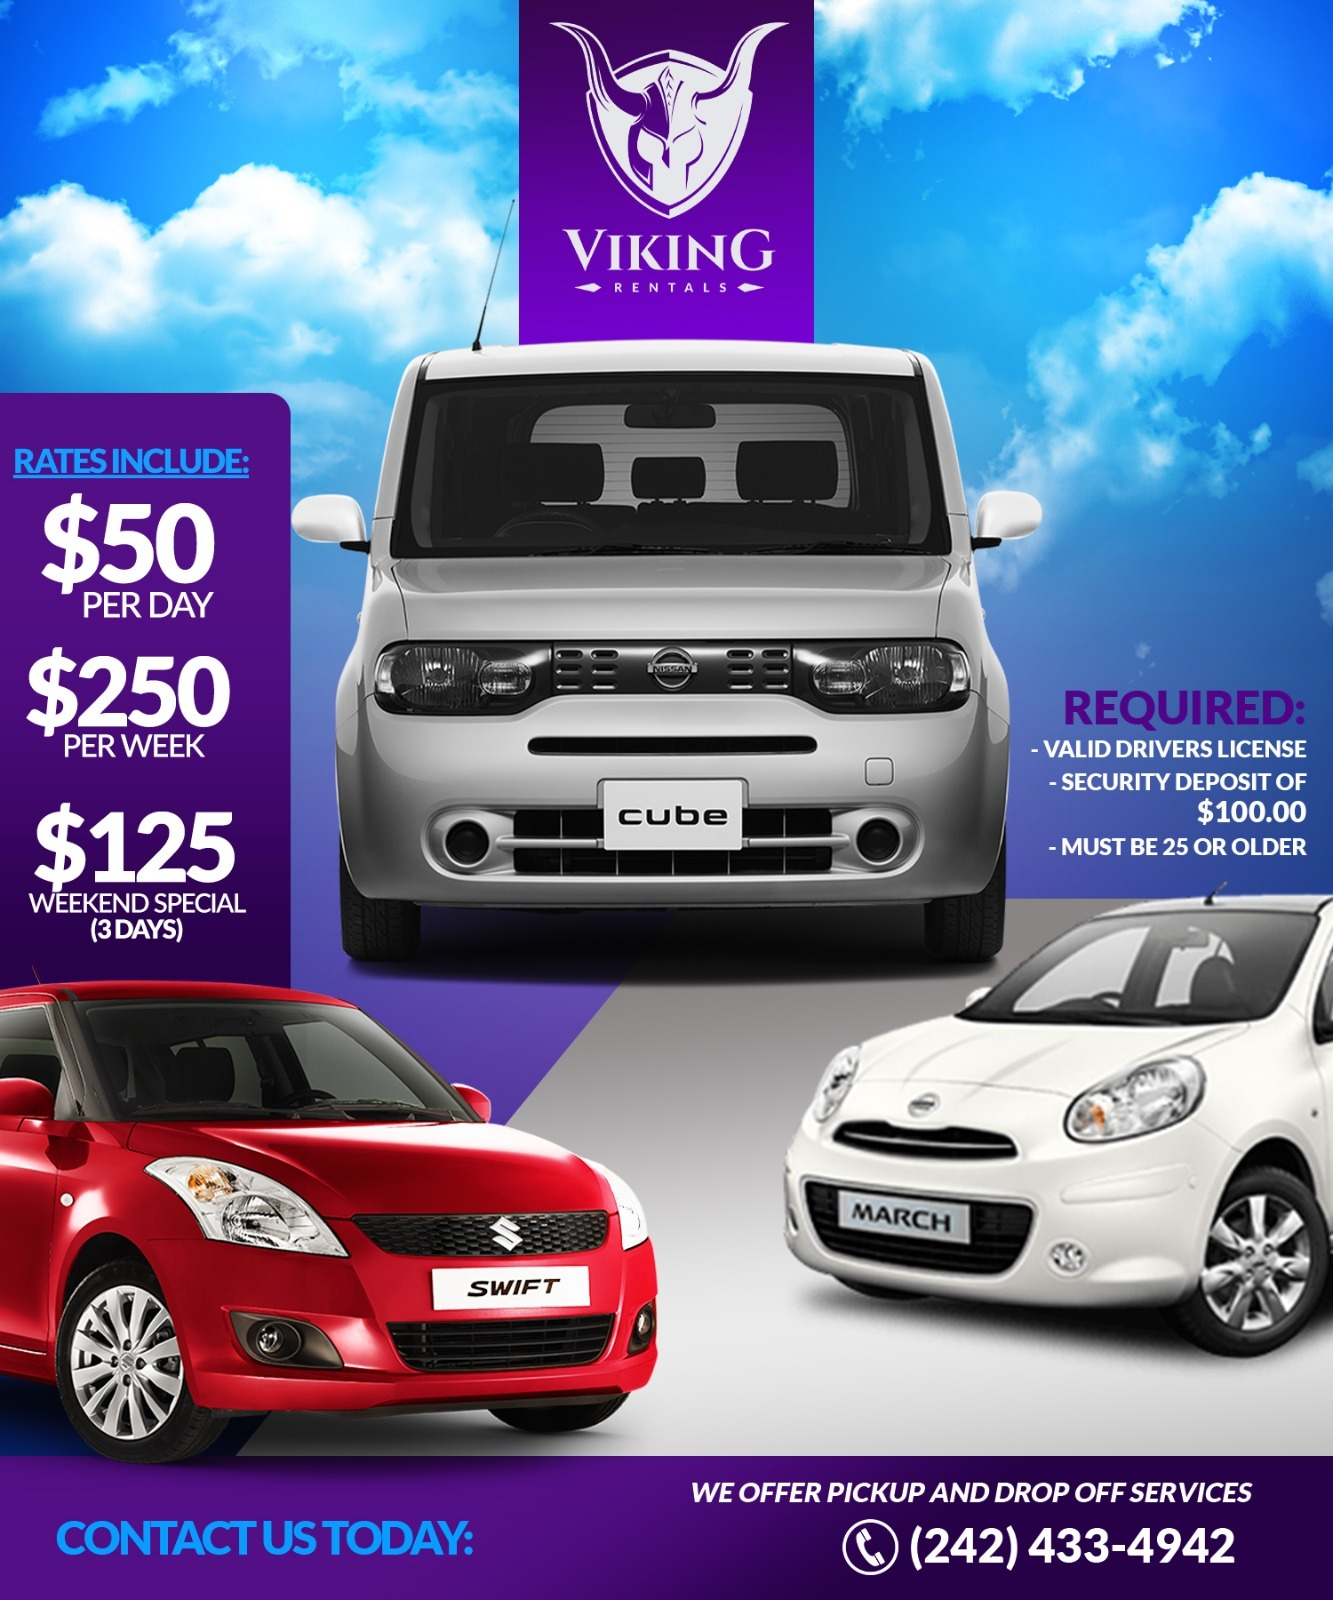 Viking Car Rentals